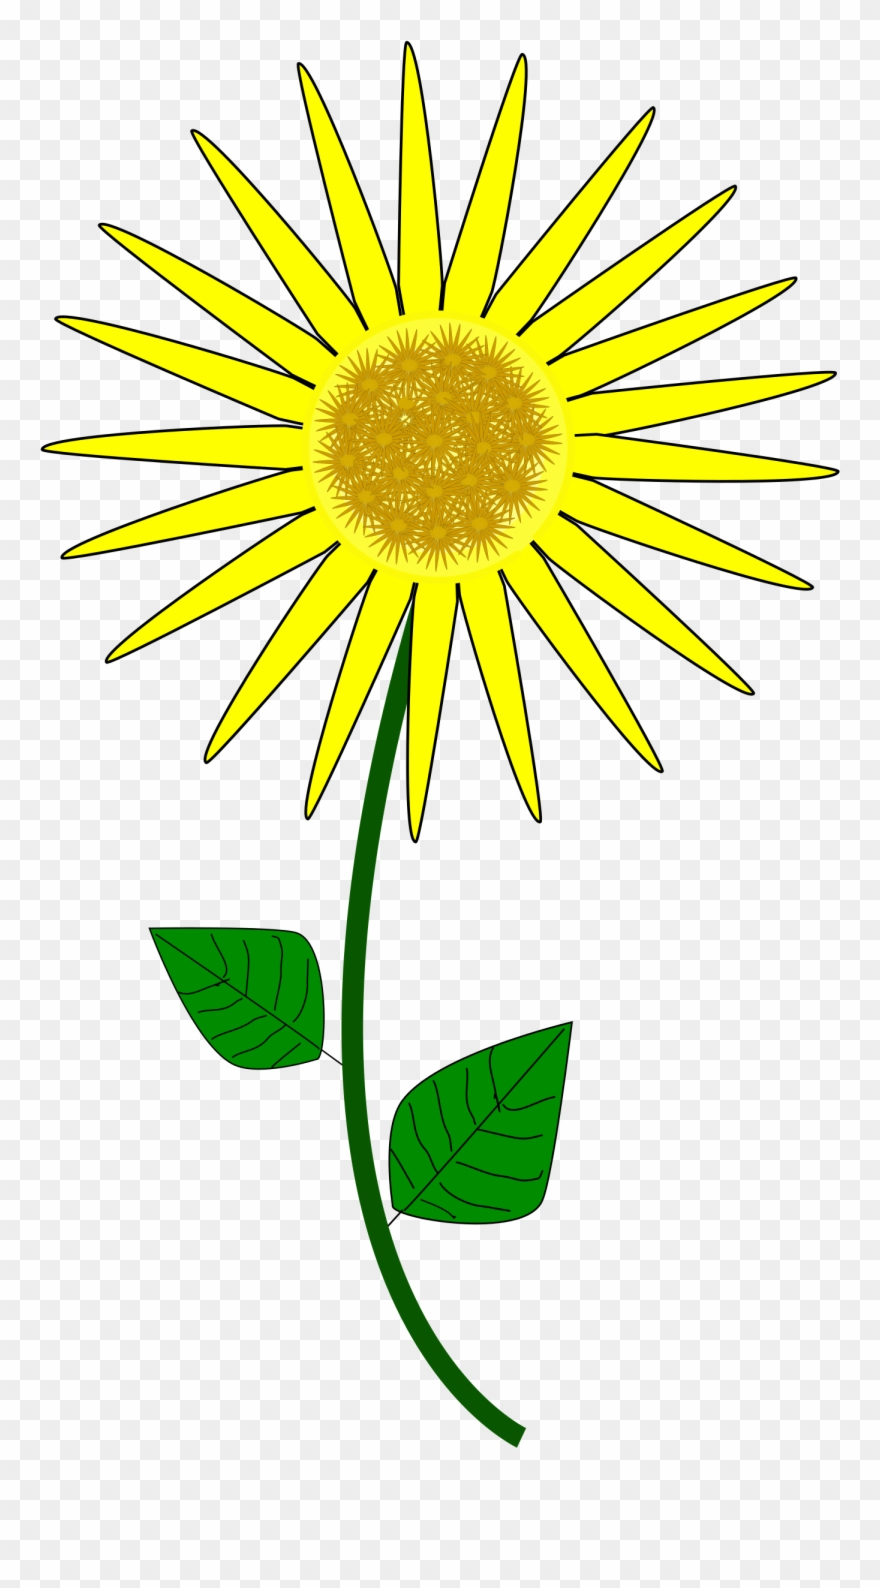 Sunflower Clip Art Free Clipart To Use Resource.